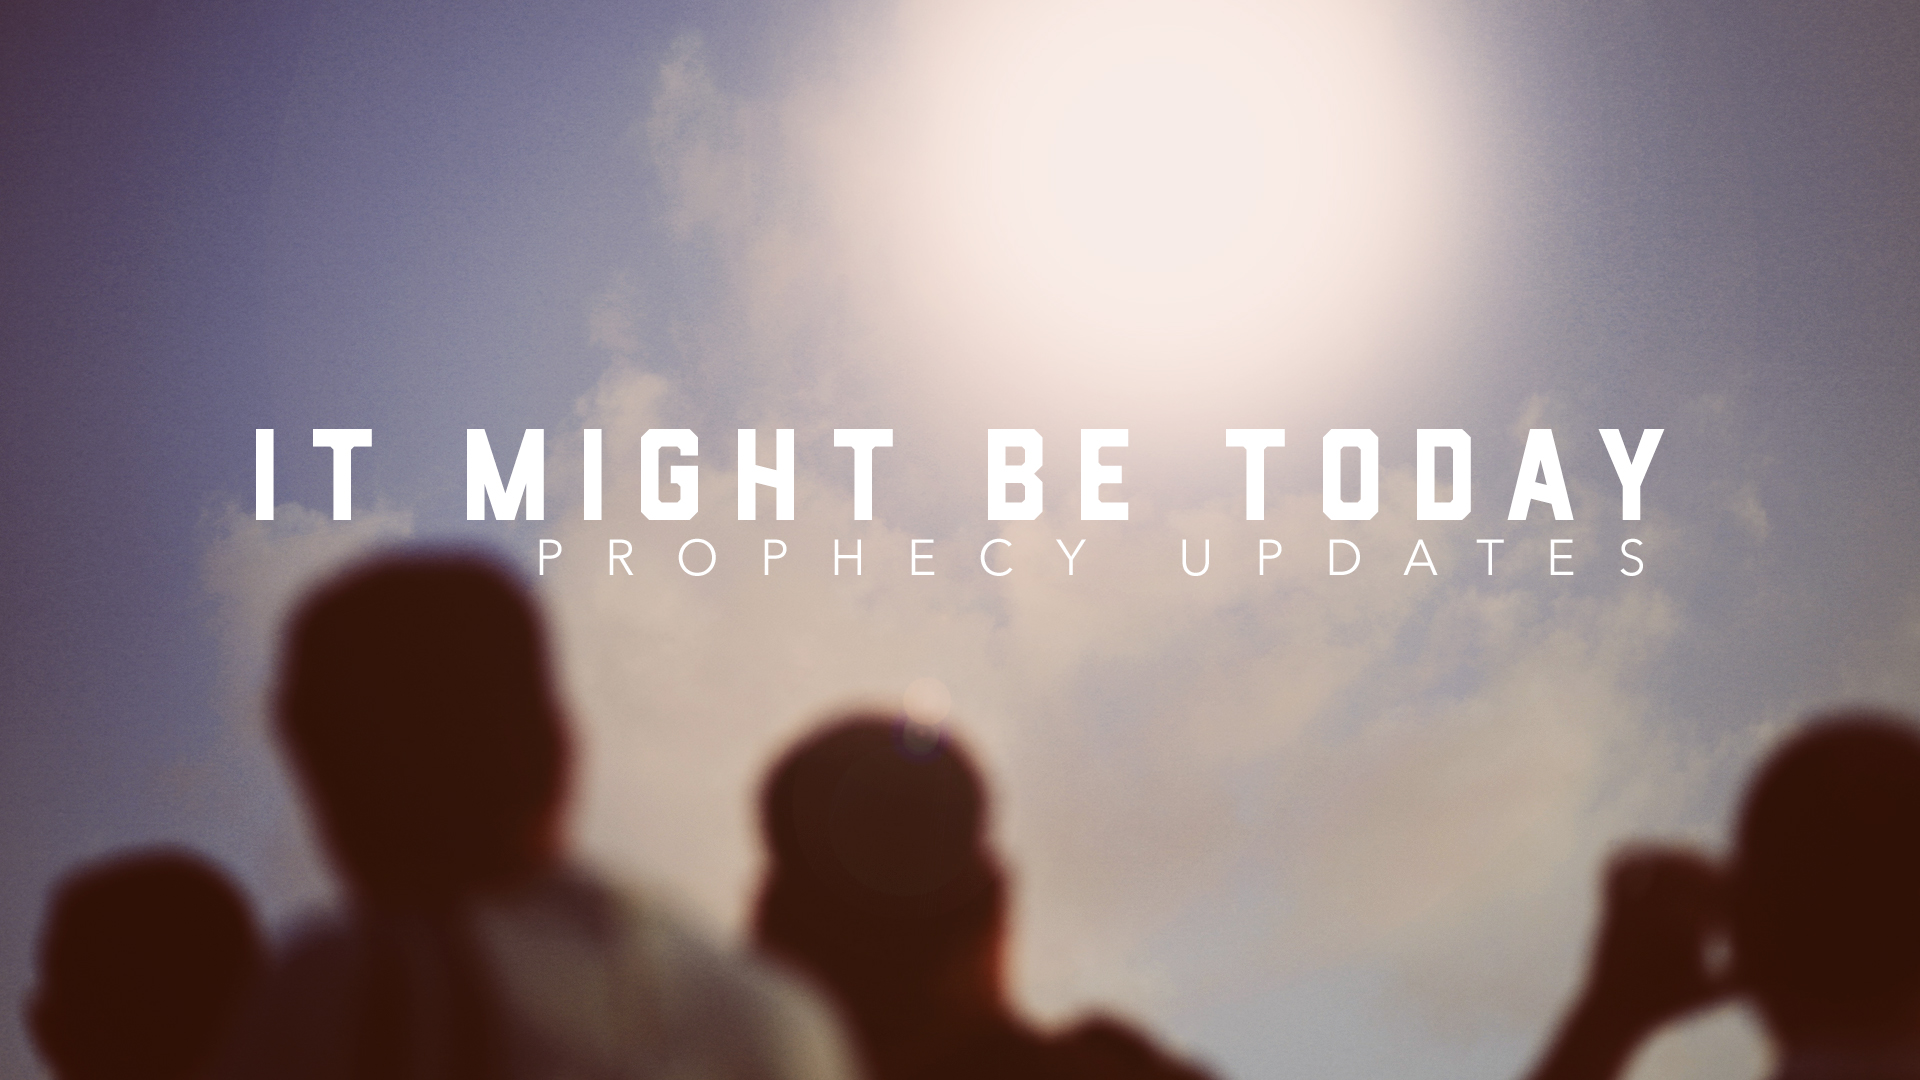 Prophecy Updates